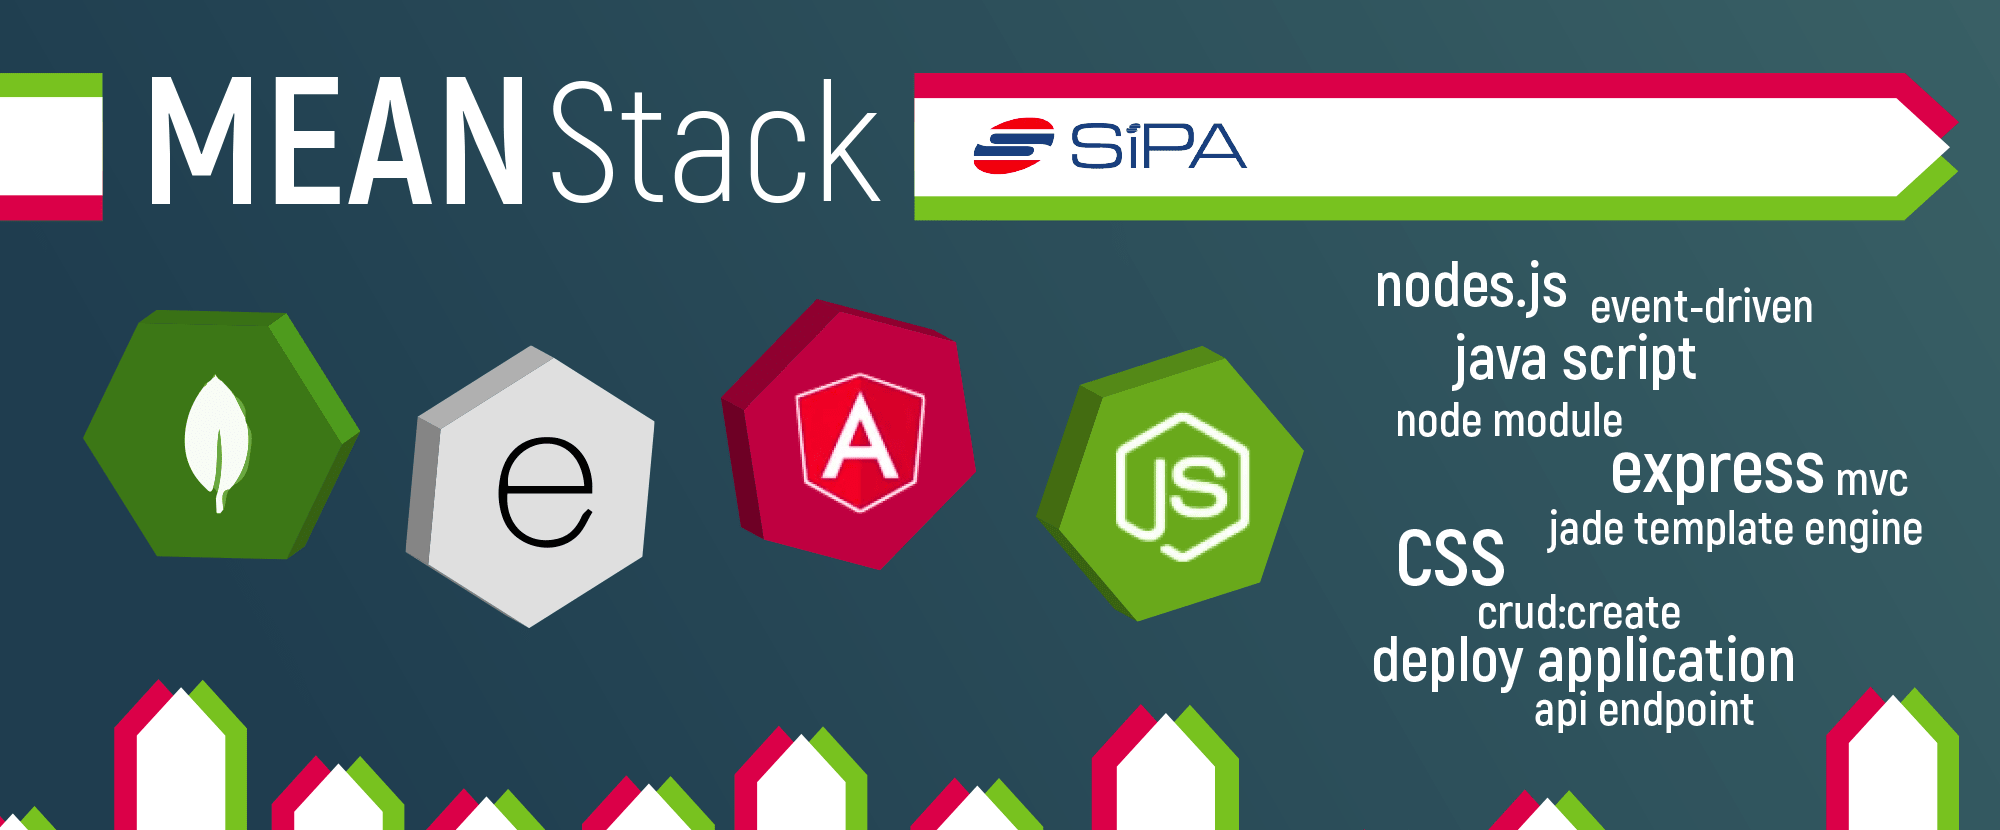 MEAN STACK MEANSTACK01